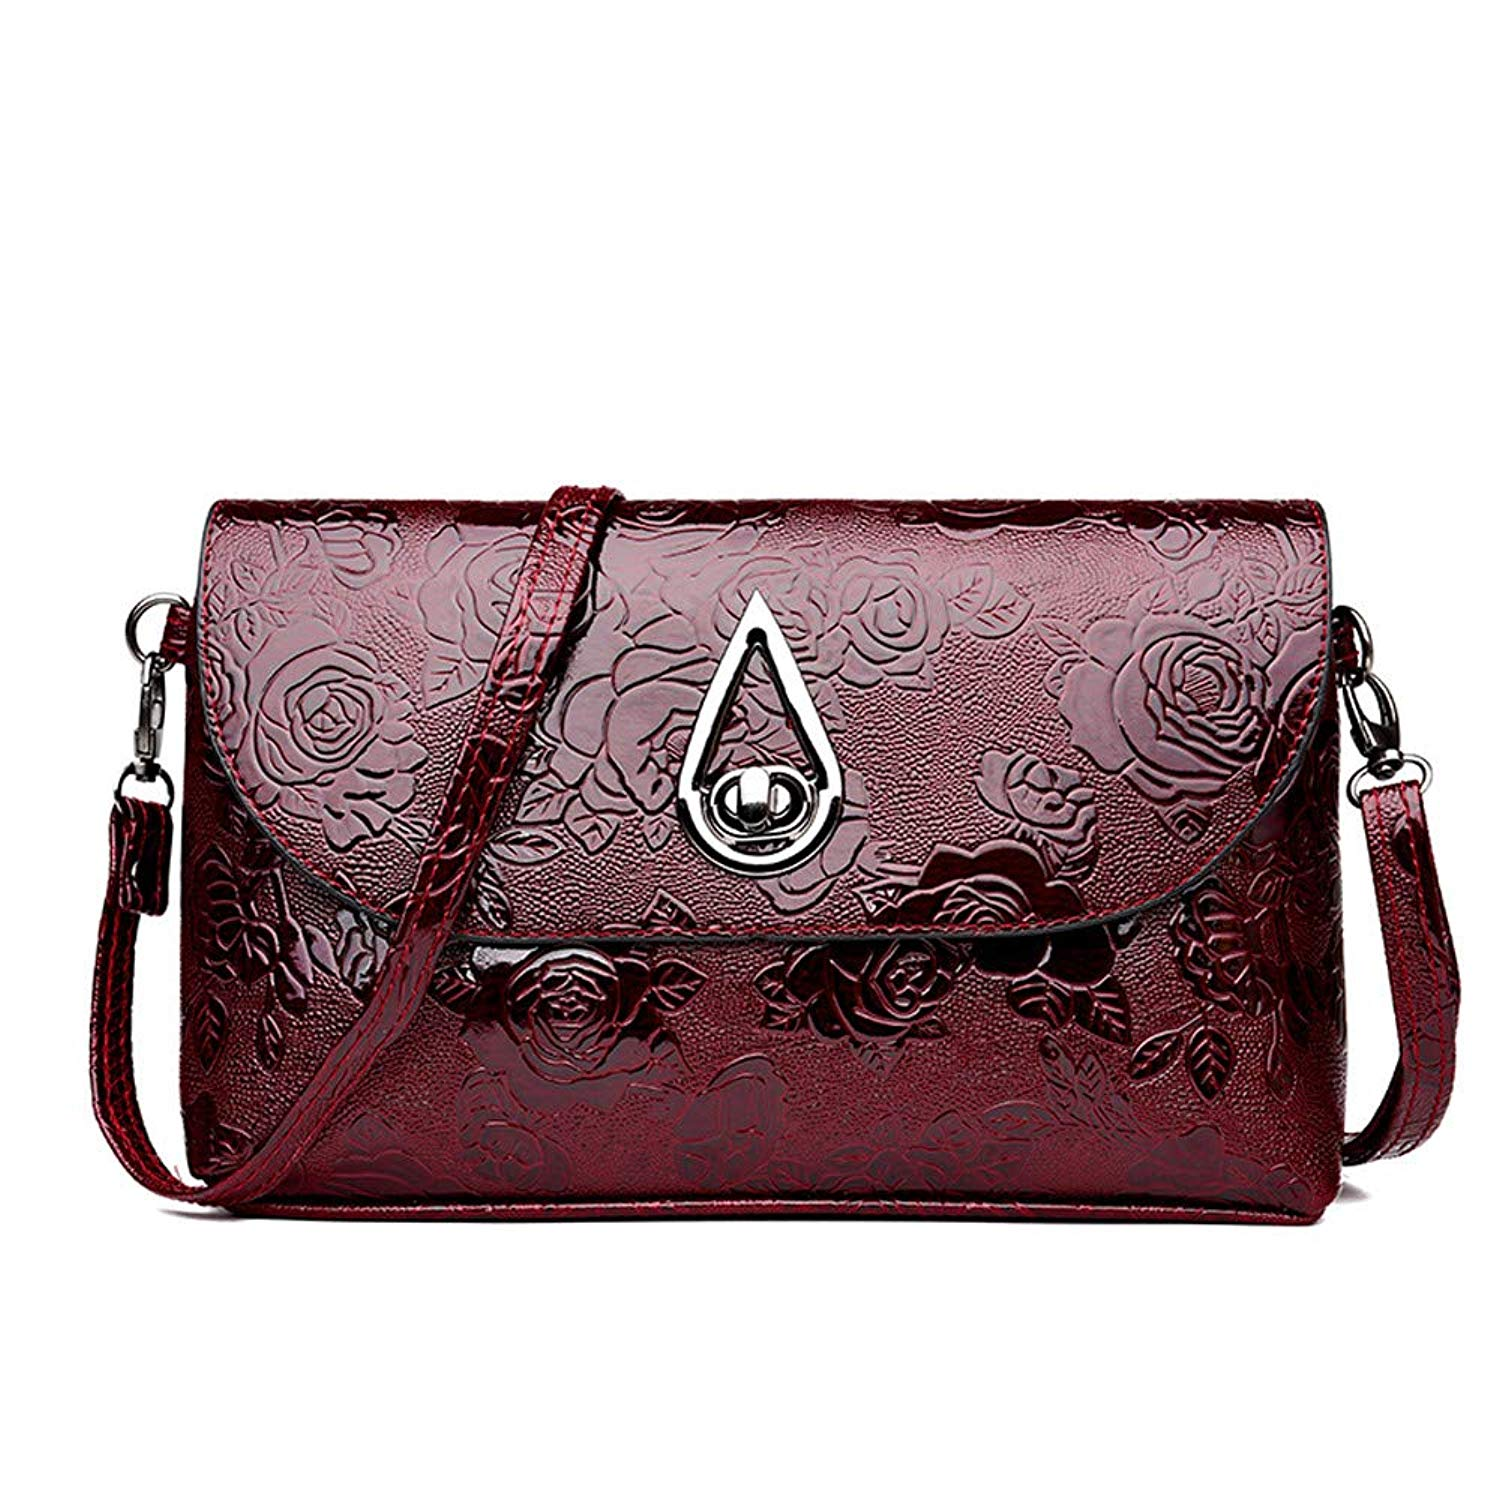 Cheap Vintage Crossbody Bag 2f6f819293f0c